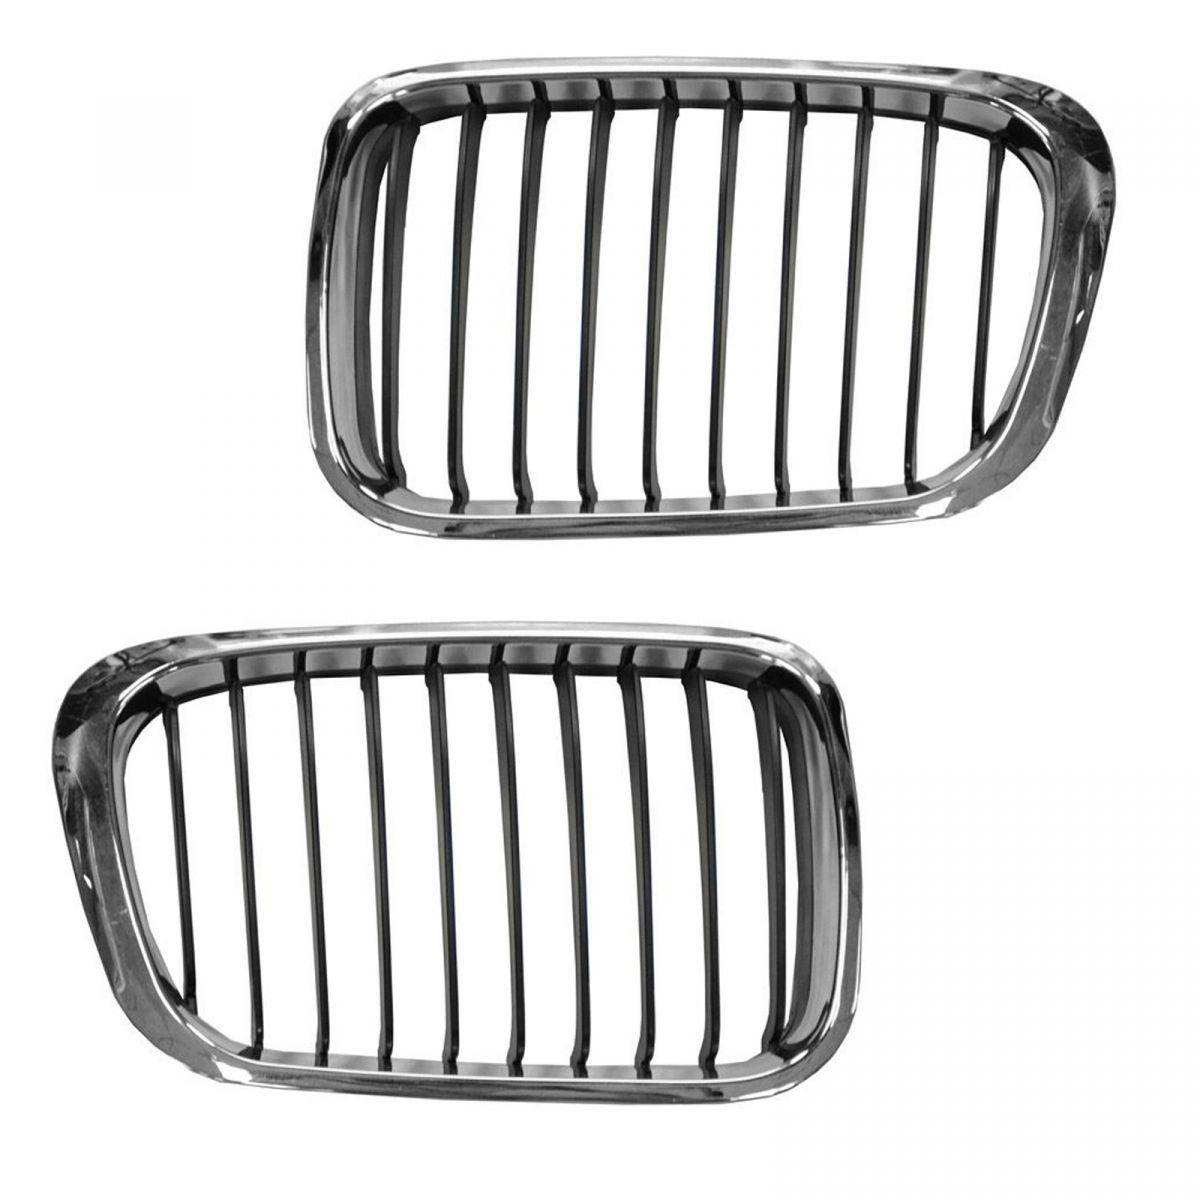 Grill Grille Chrome Insert Upper Pair Set For 99 01 Bmw 3